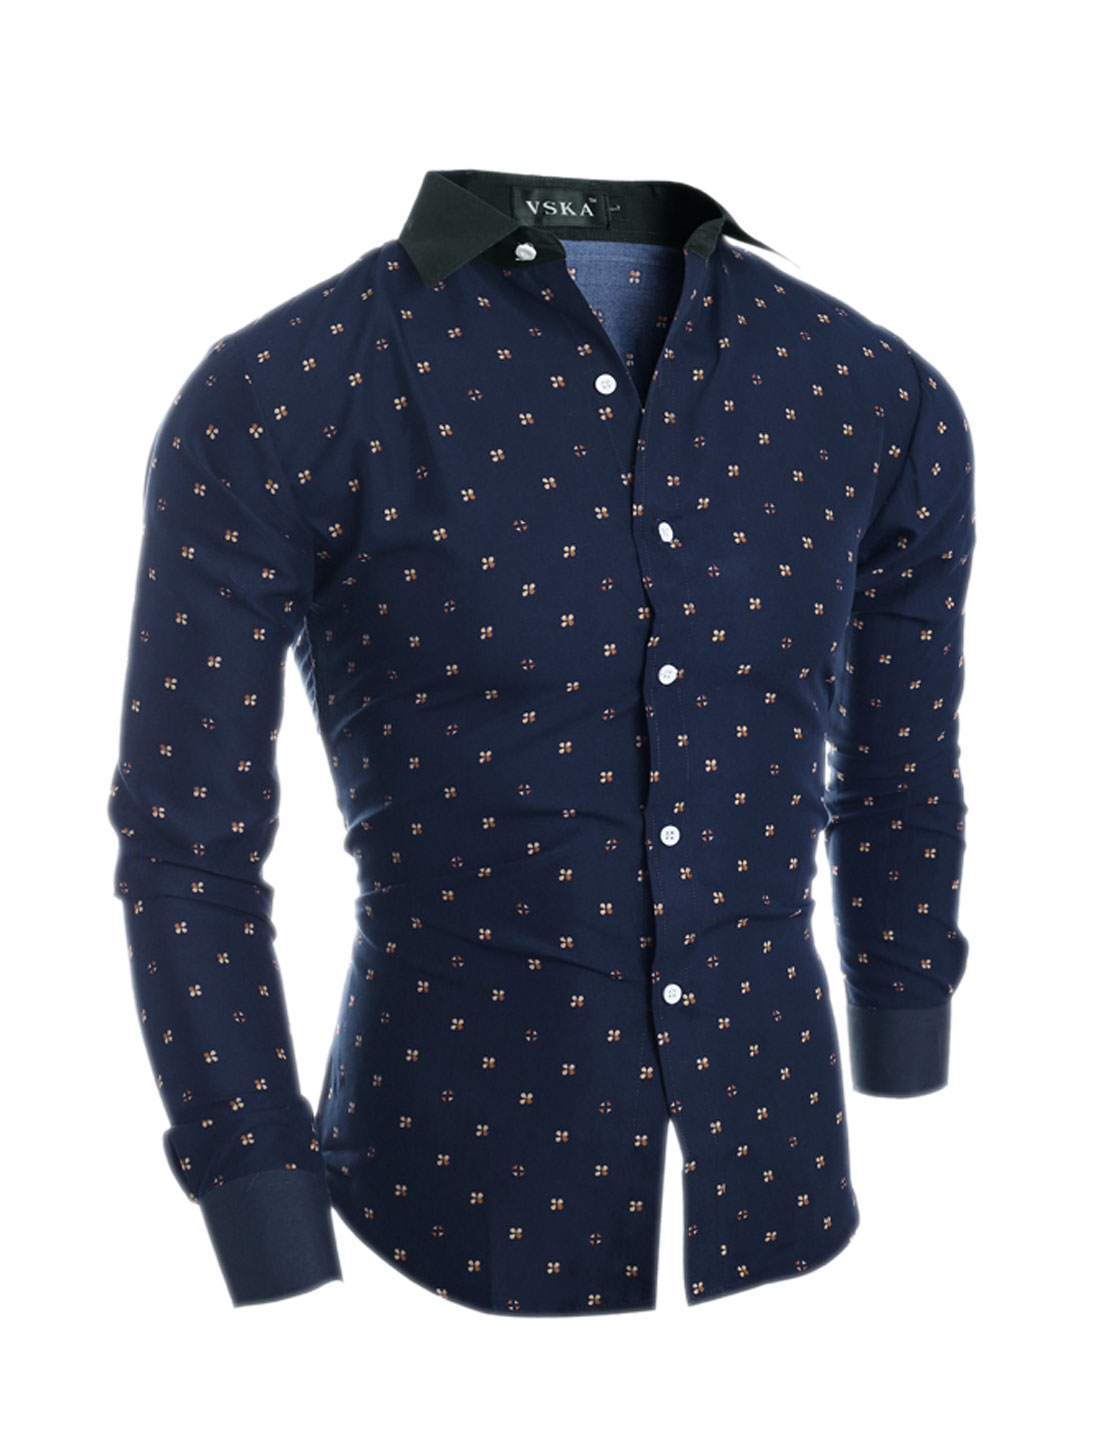 Man Collared Button Up Slim Fit Floral Shirt Navy Blue S